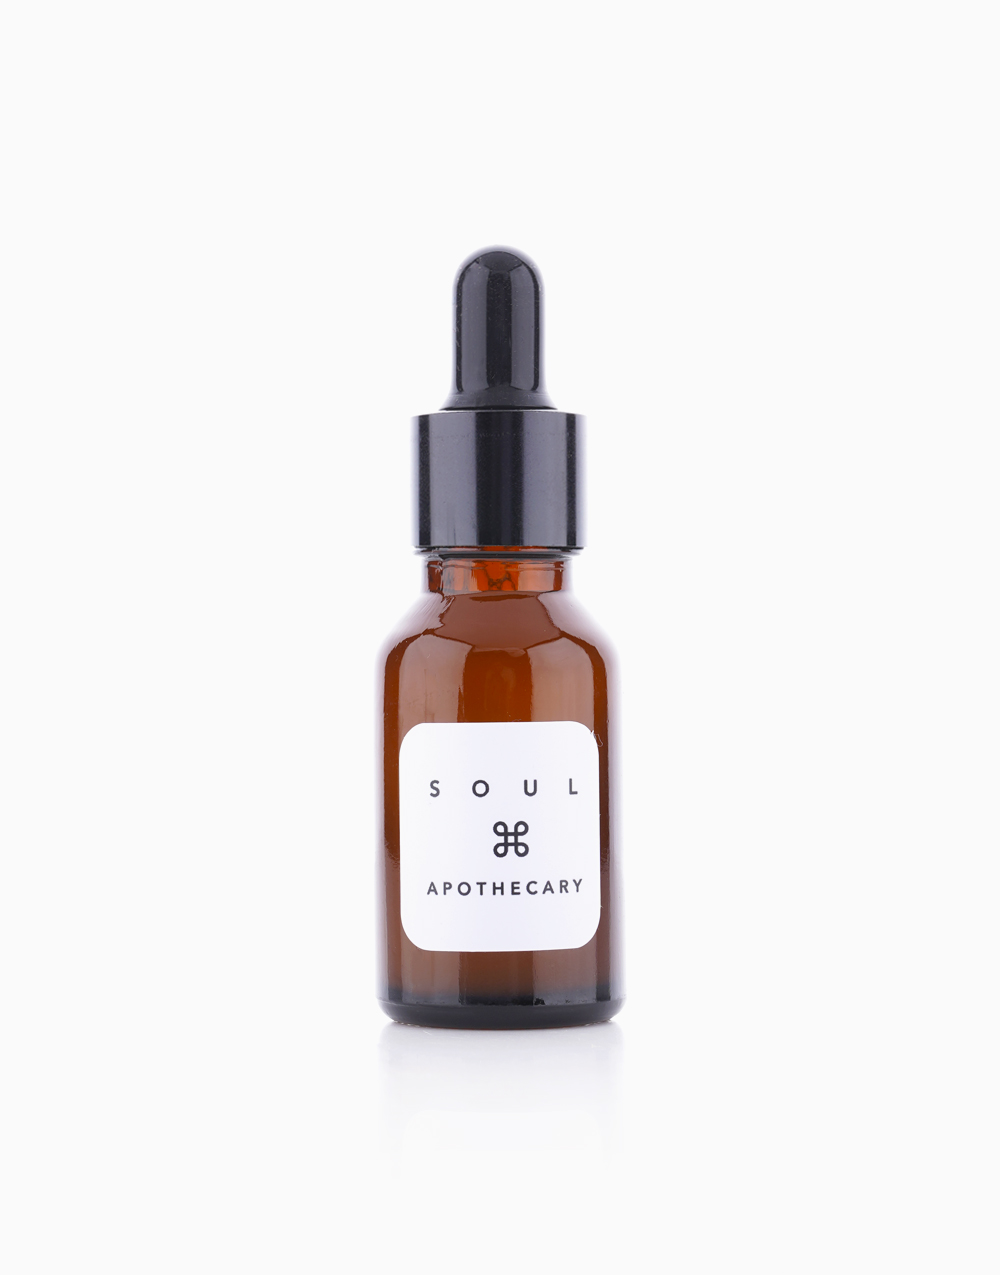 Astaxanthin Super Antioxidant Serum by Soul Apothecary